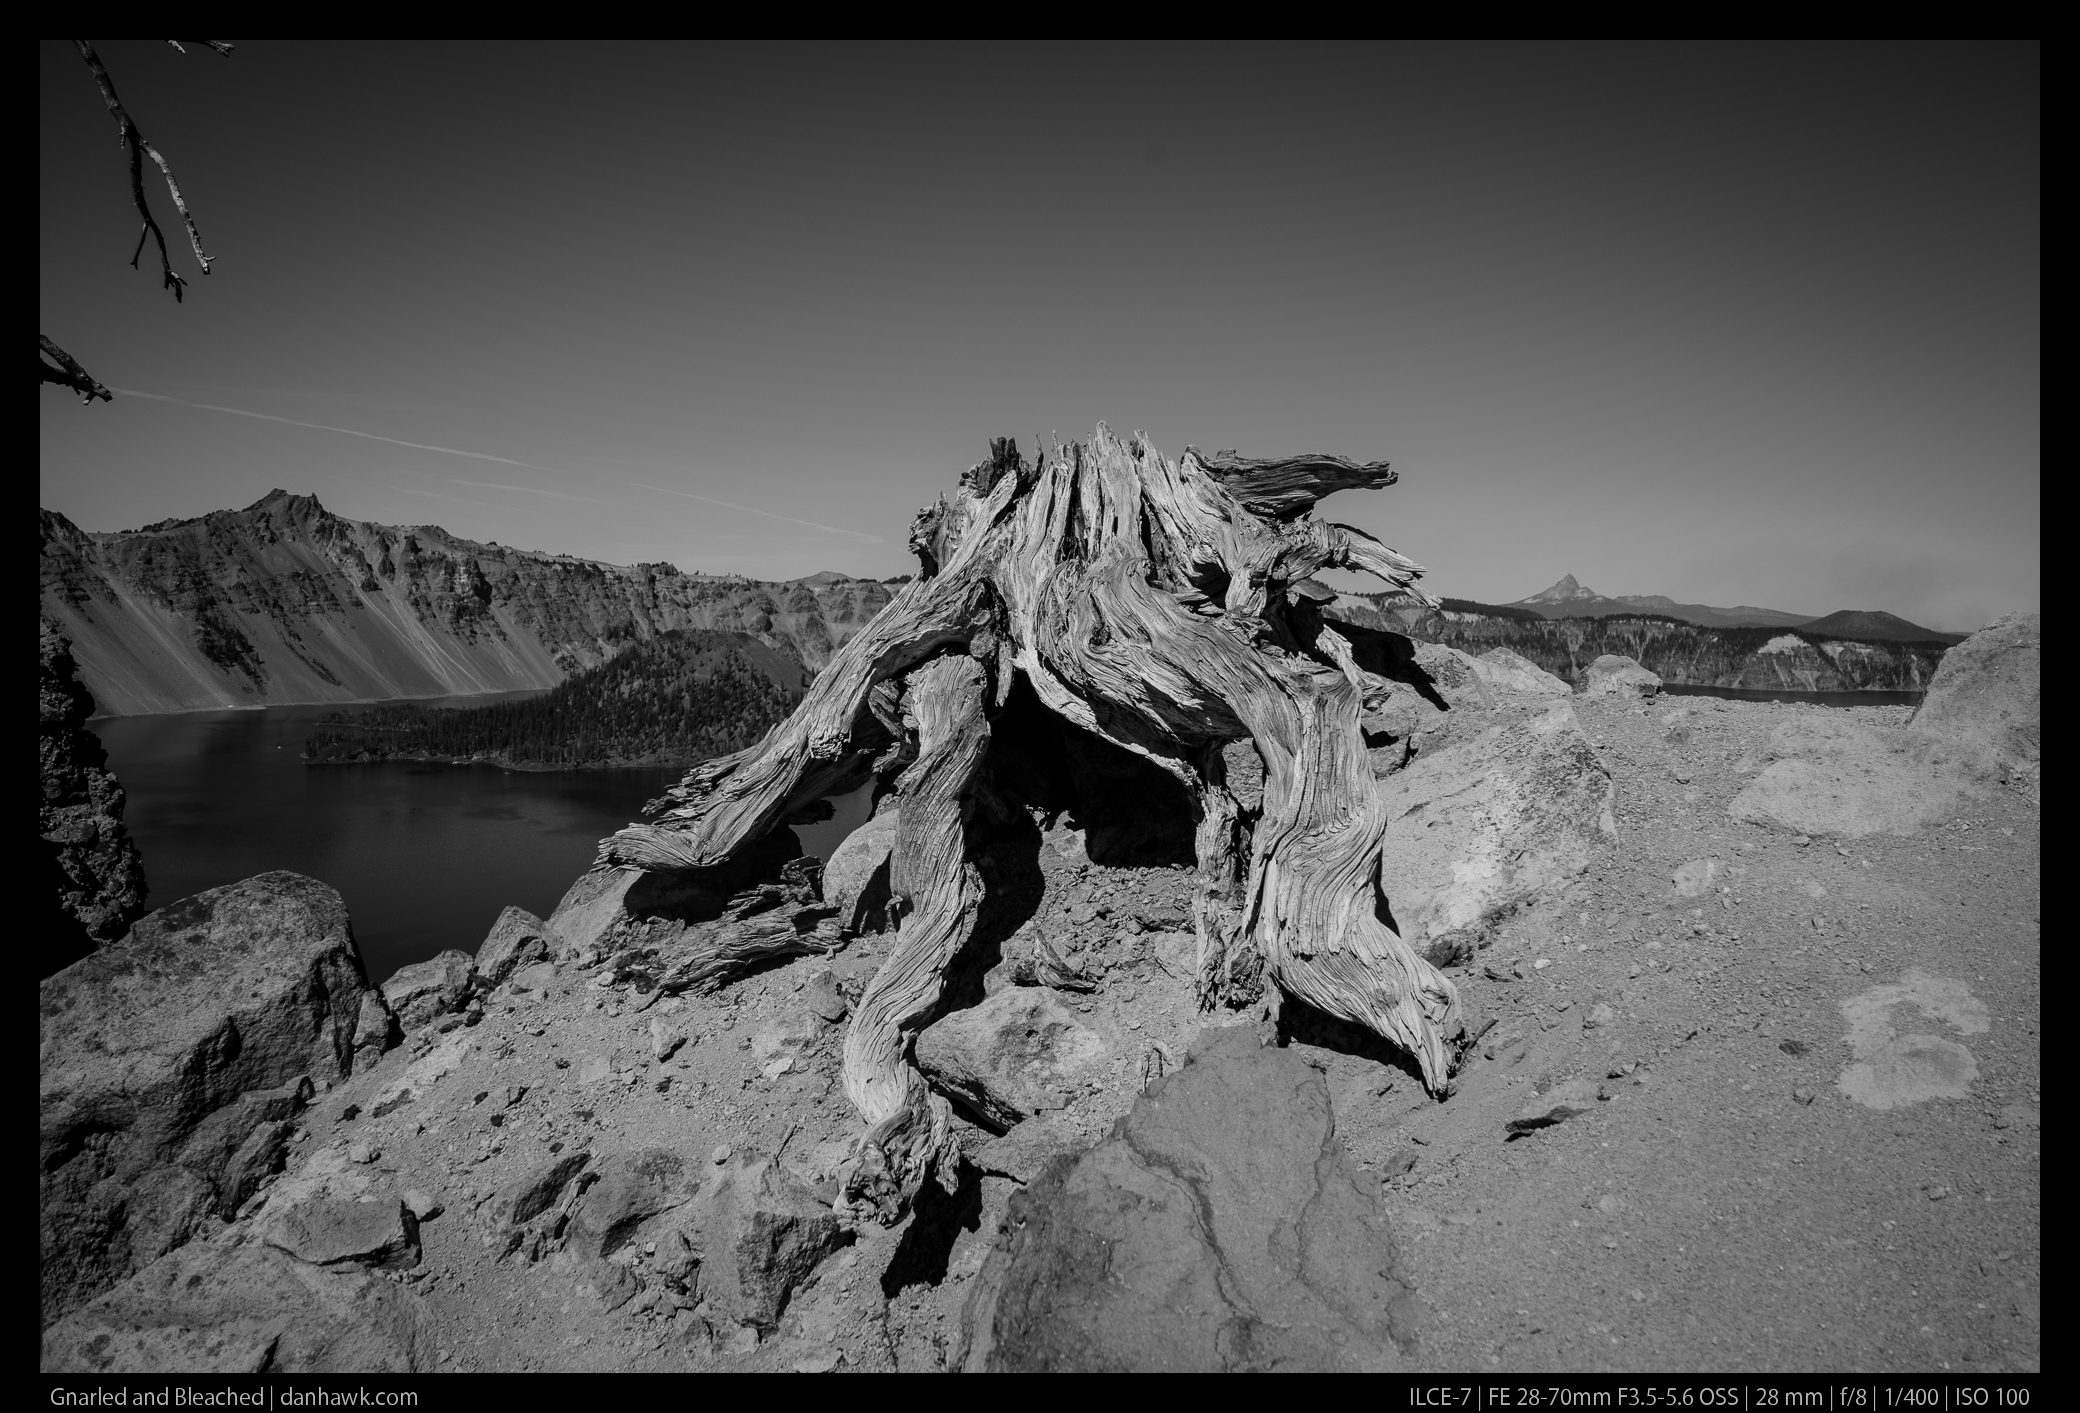 Gnarled and Bleached